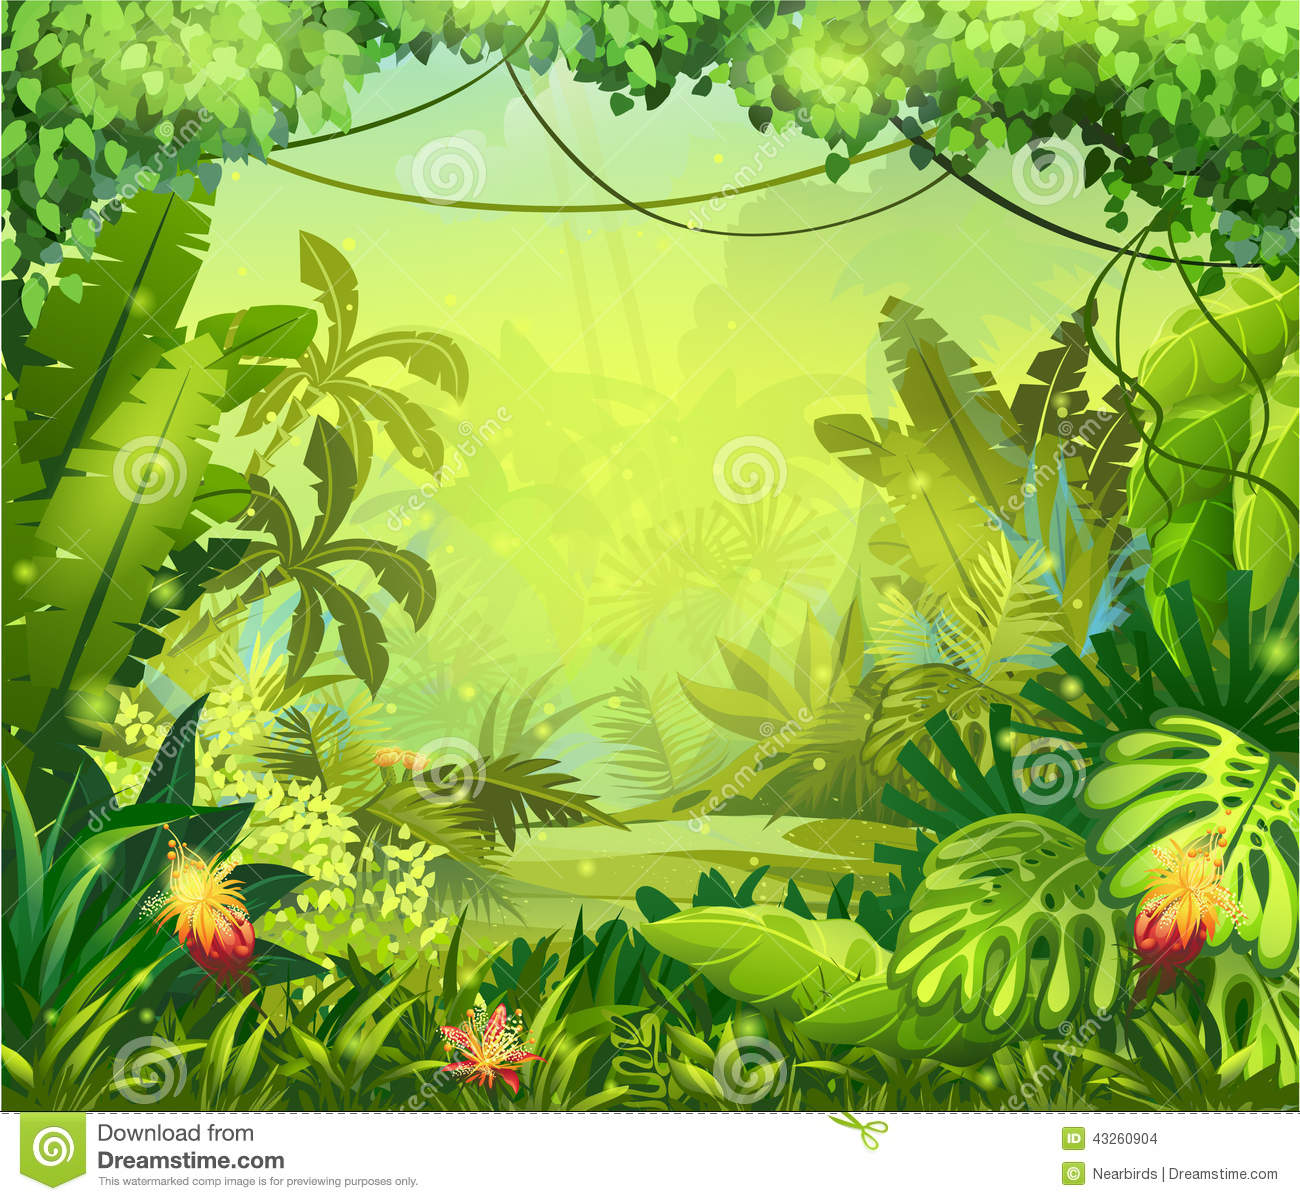 Illustration Jungle With Red Flowers Stock Vector - Image: 43260904